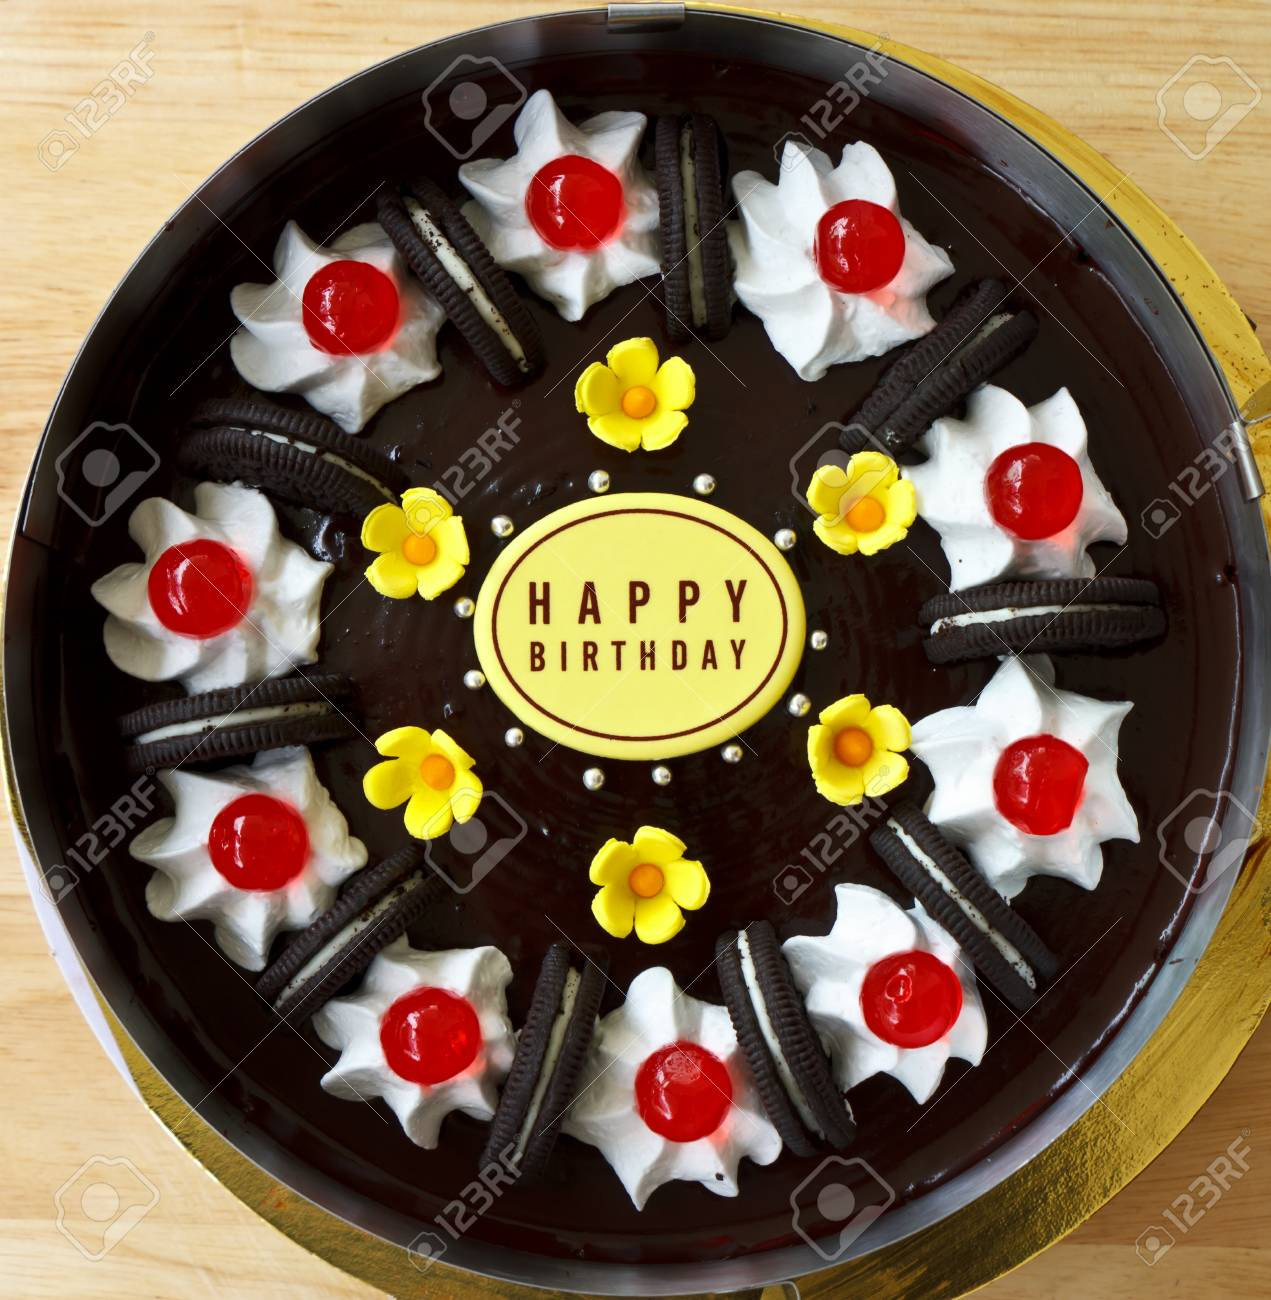 Happy Birthday Chocolate Cake Stock Photo Picture And Royalty Free Image Image 43838104